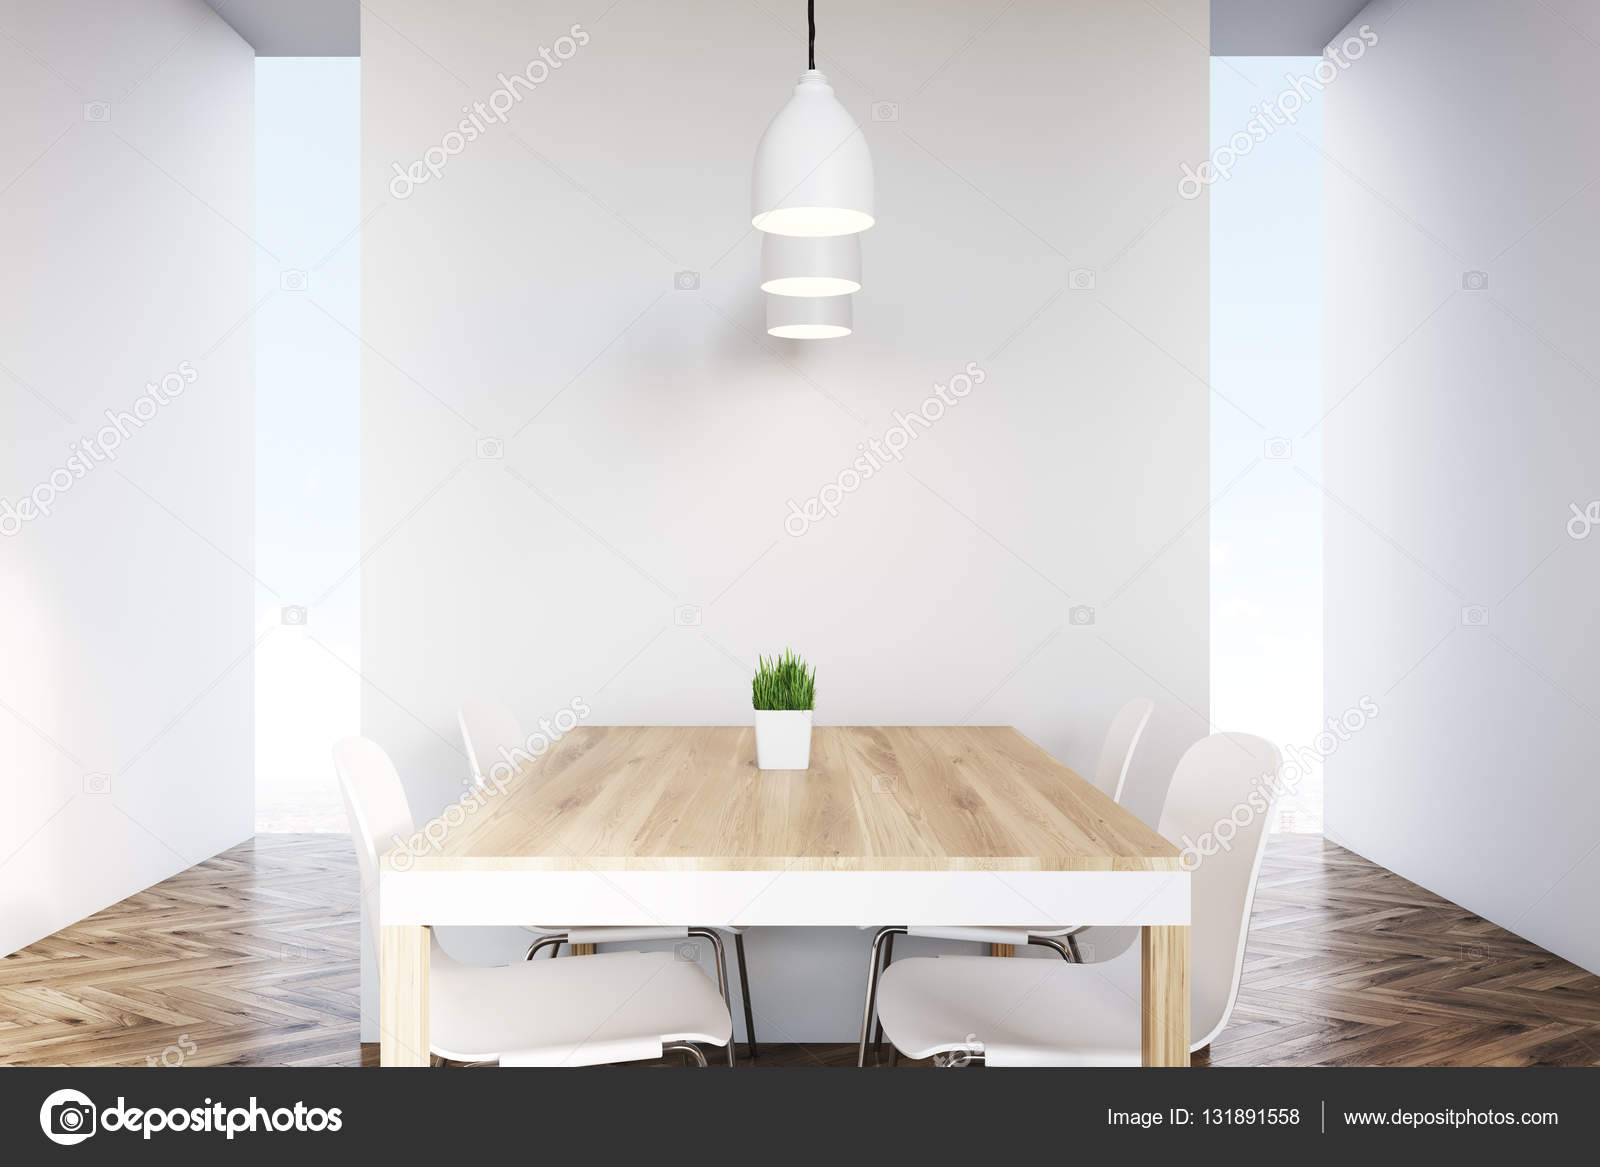 Close Up Of A Dining Table In An Empty Kitchen Stock Photo